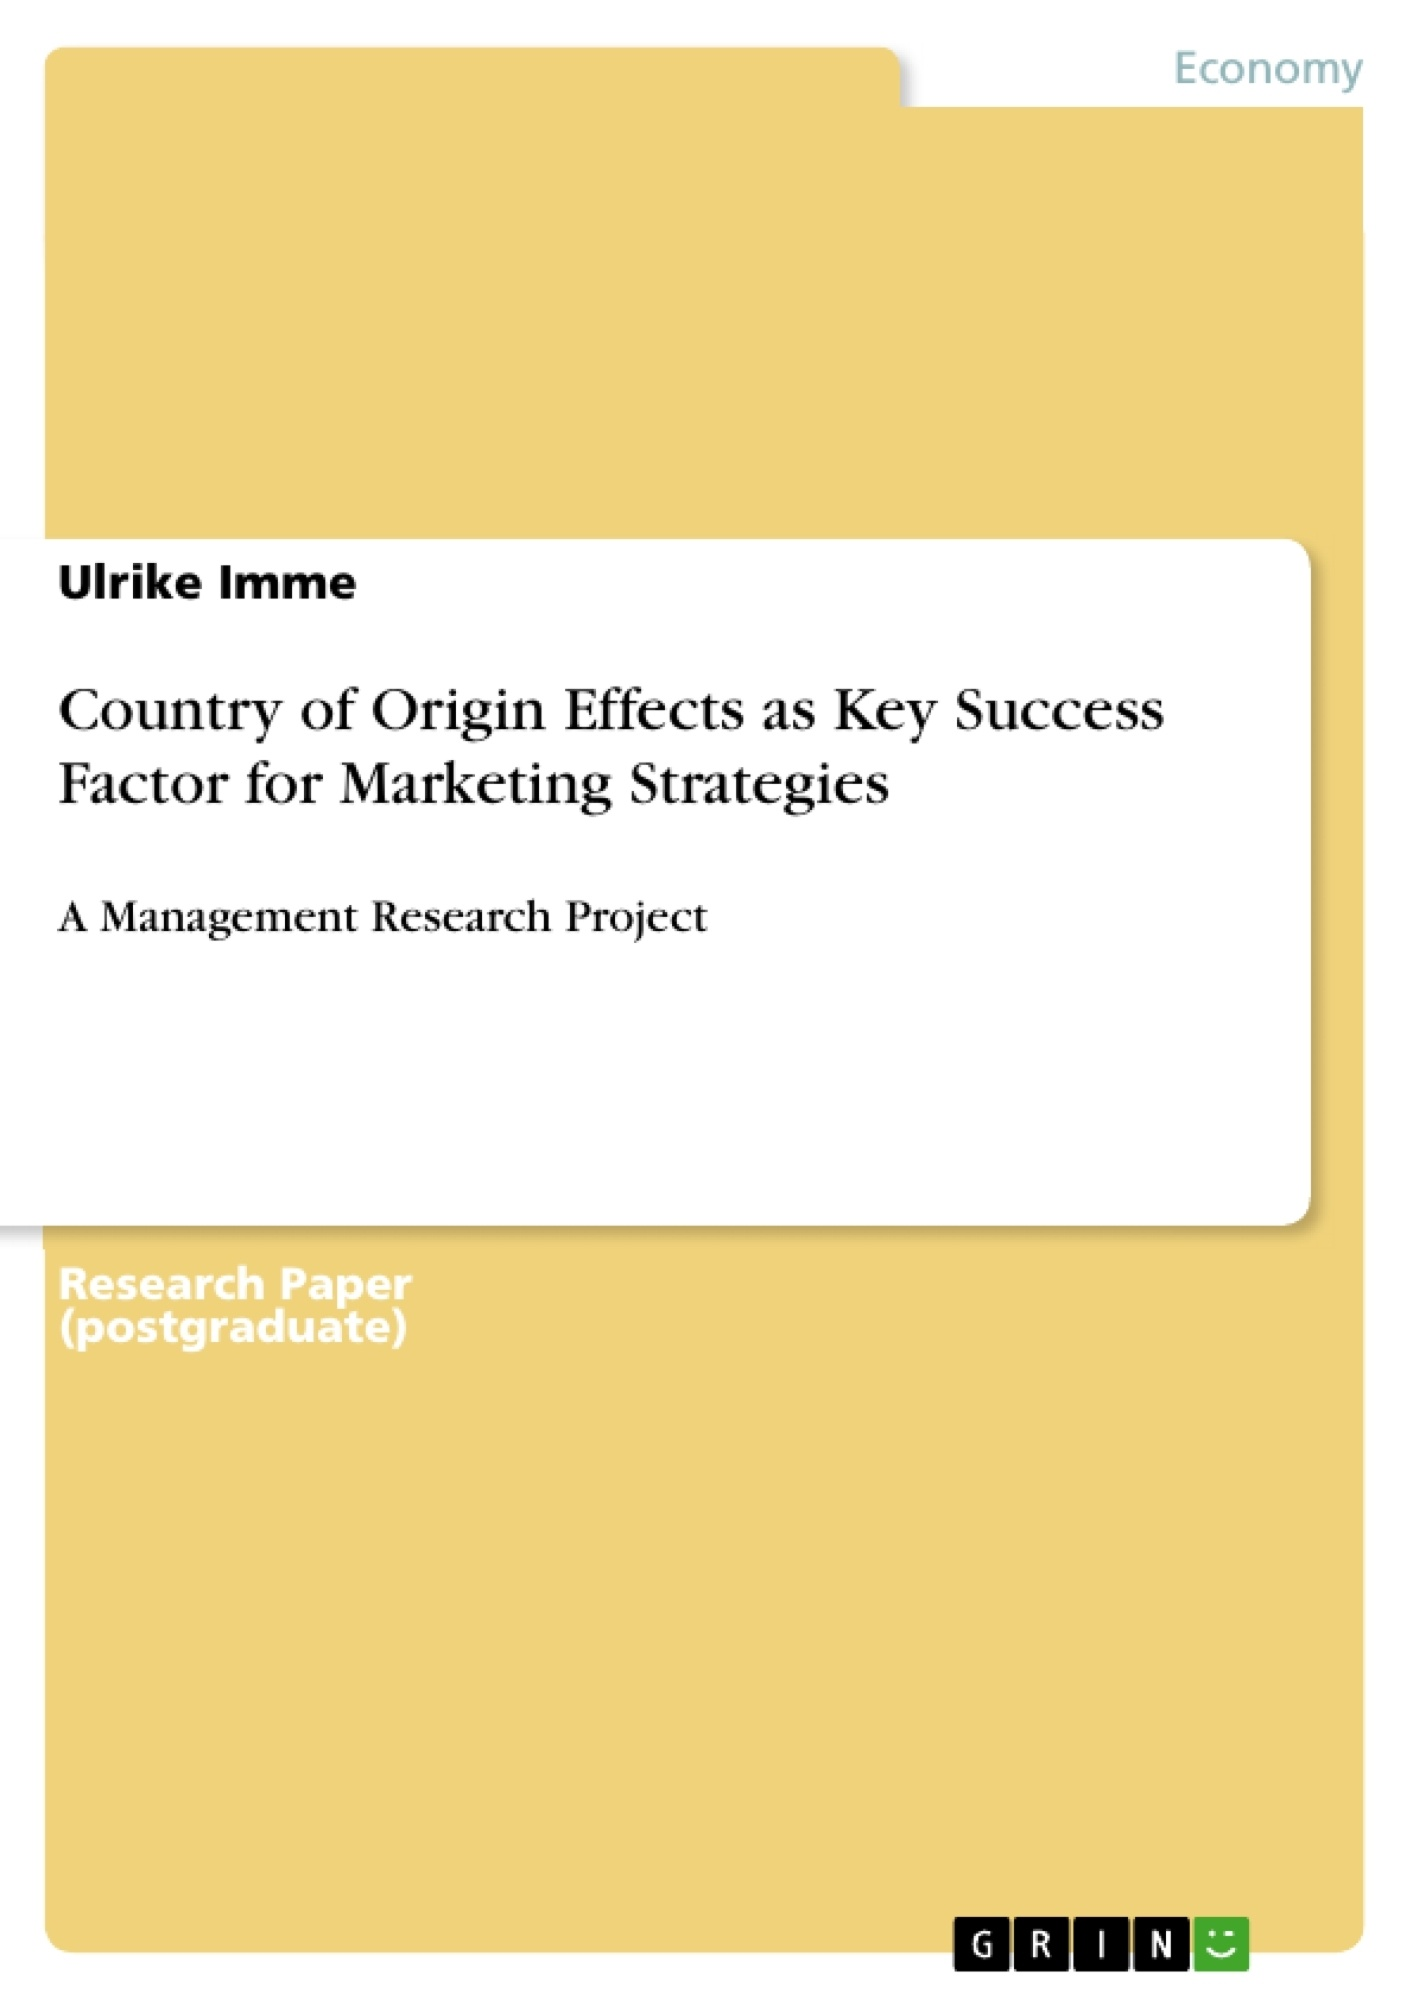 Title: Country of Origin Effects as Key Success Factor for Marketing Strategies